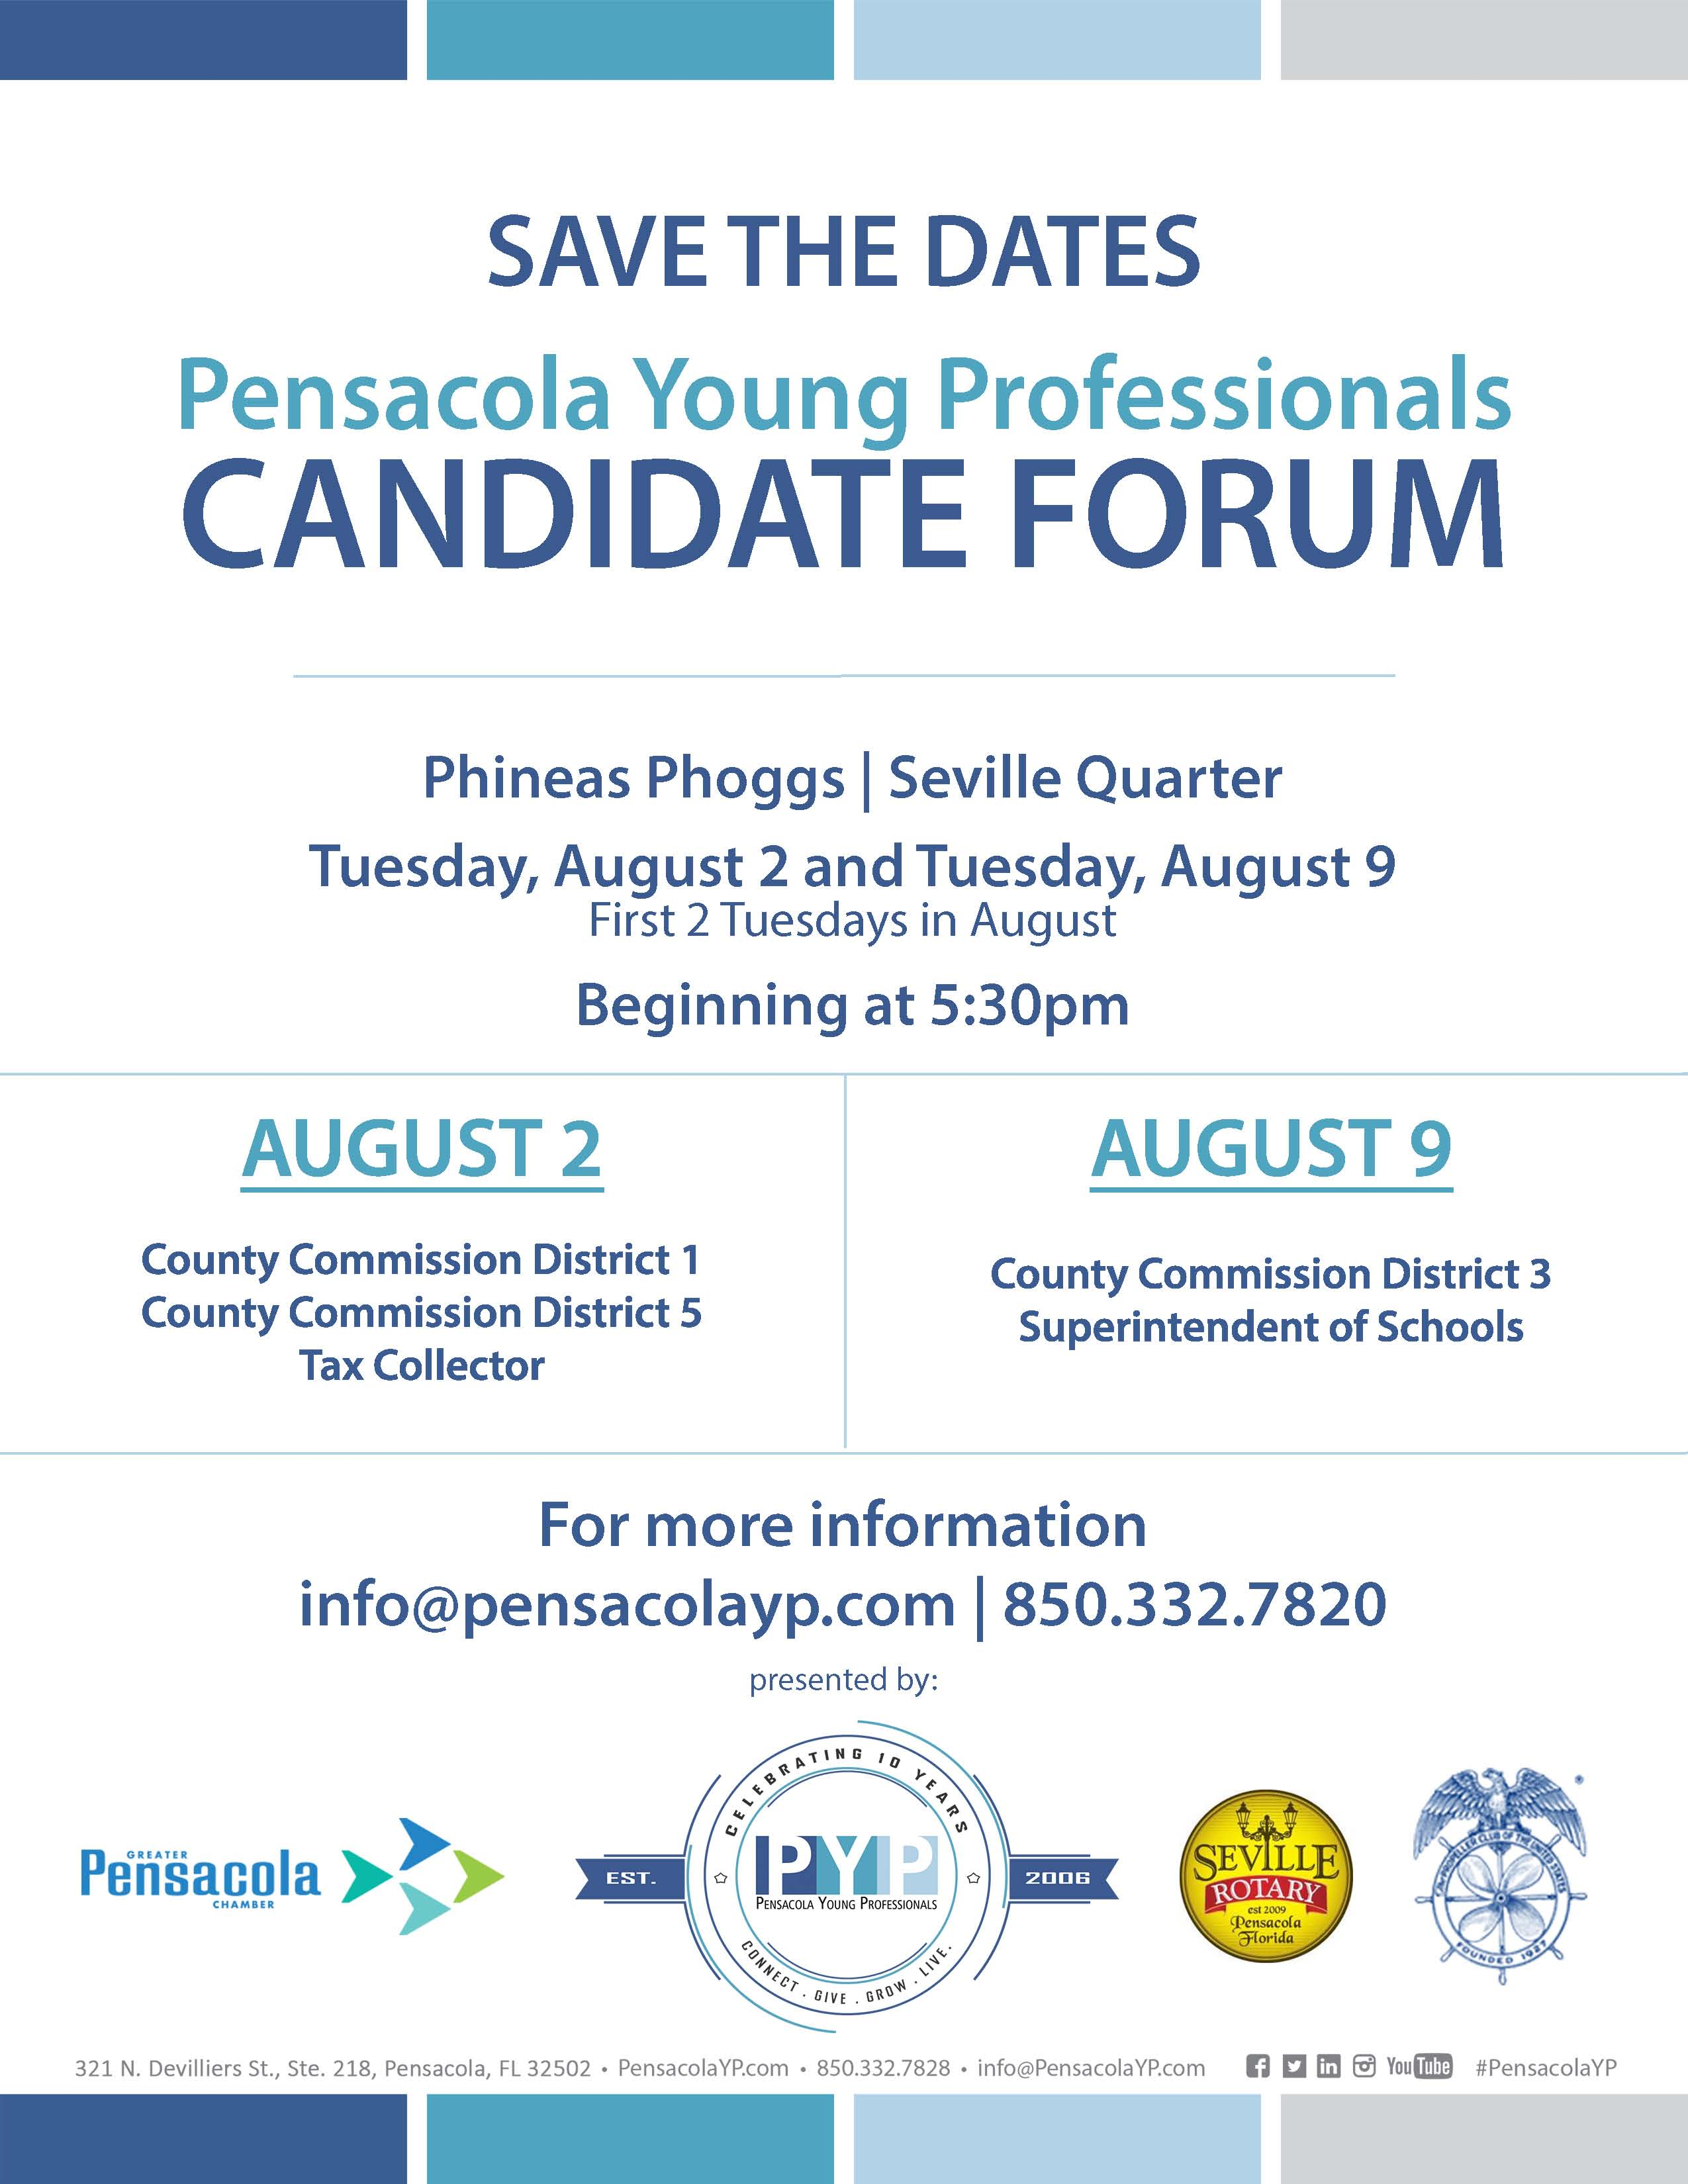 Save the Date Candidate Forum